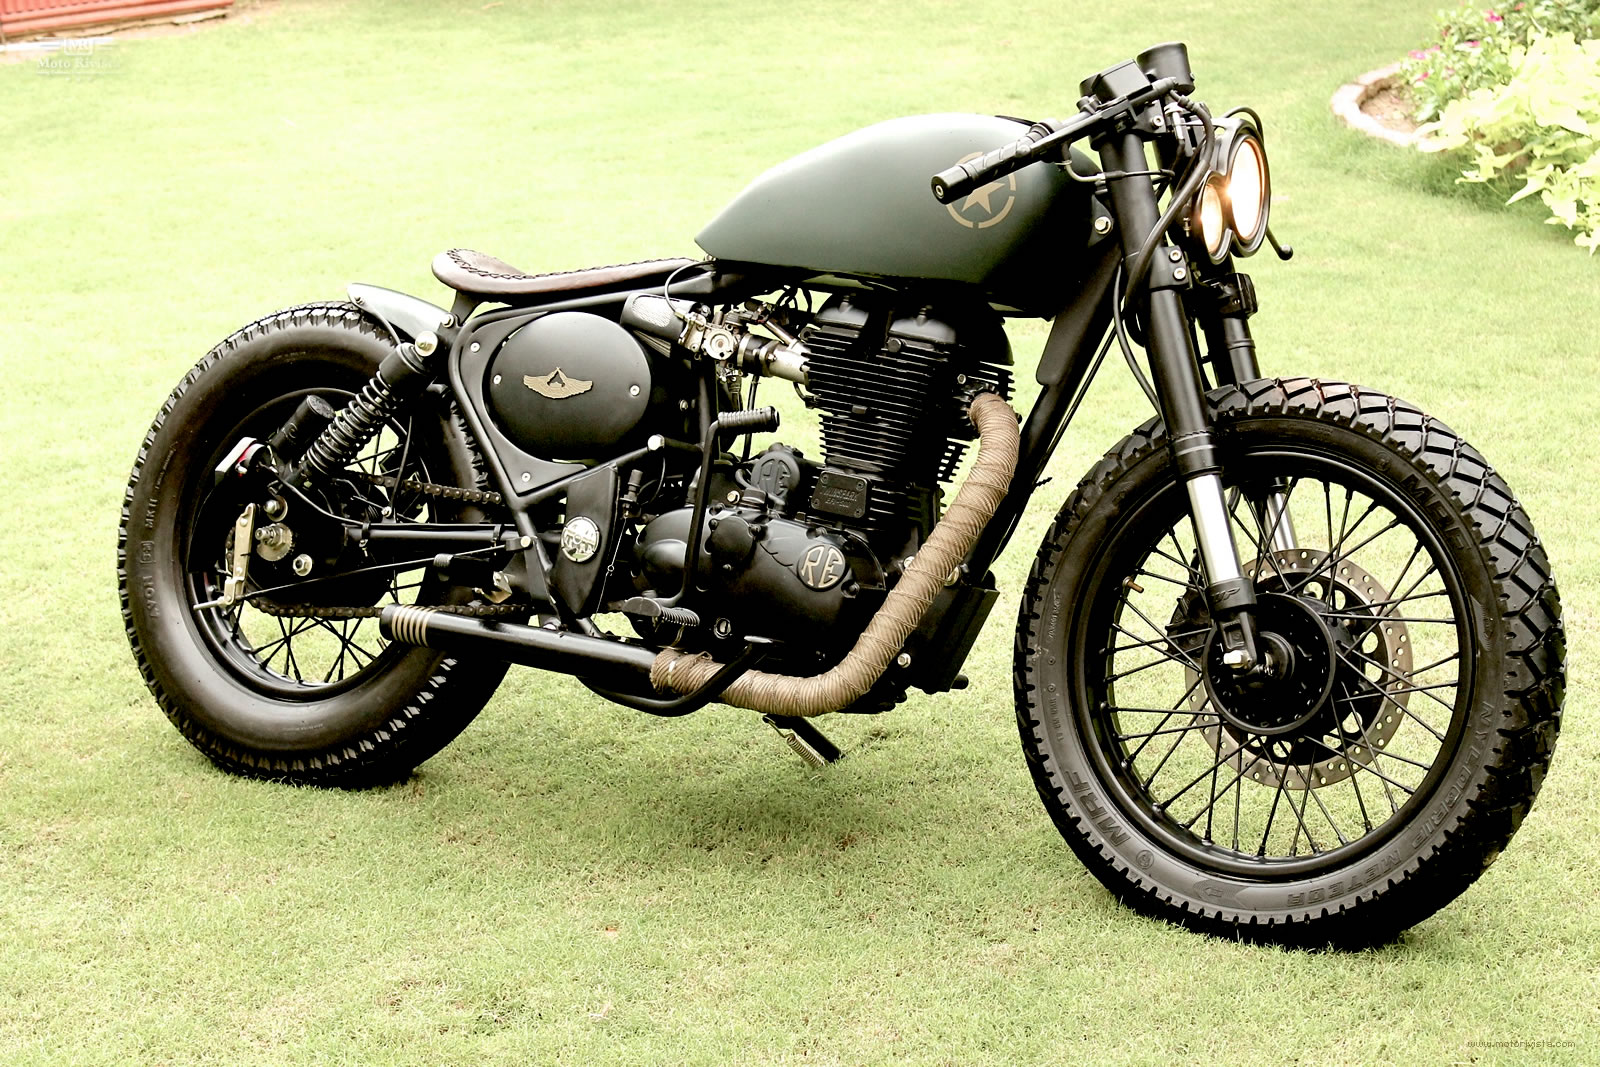 Custom-Royal-Enfield-500cc-Classic-by-Rajputana-customs-2